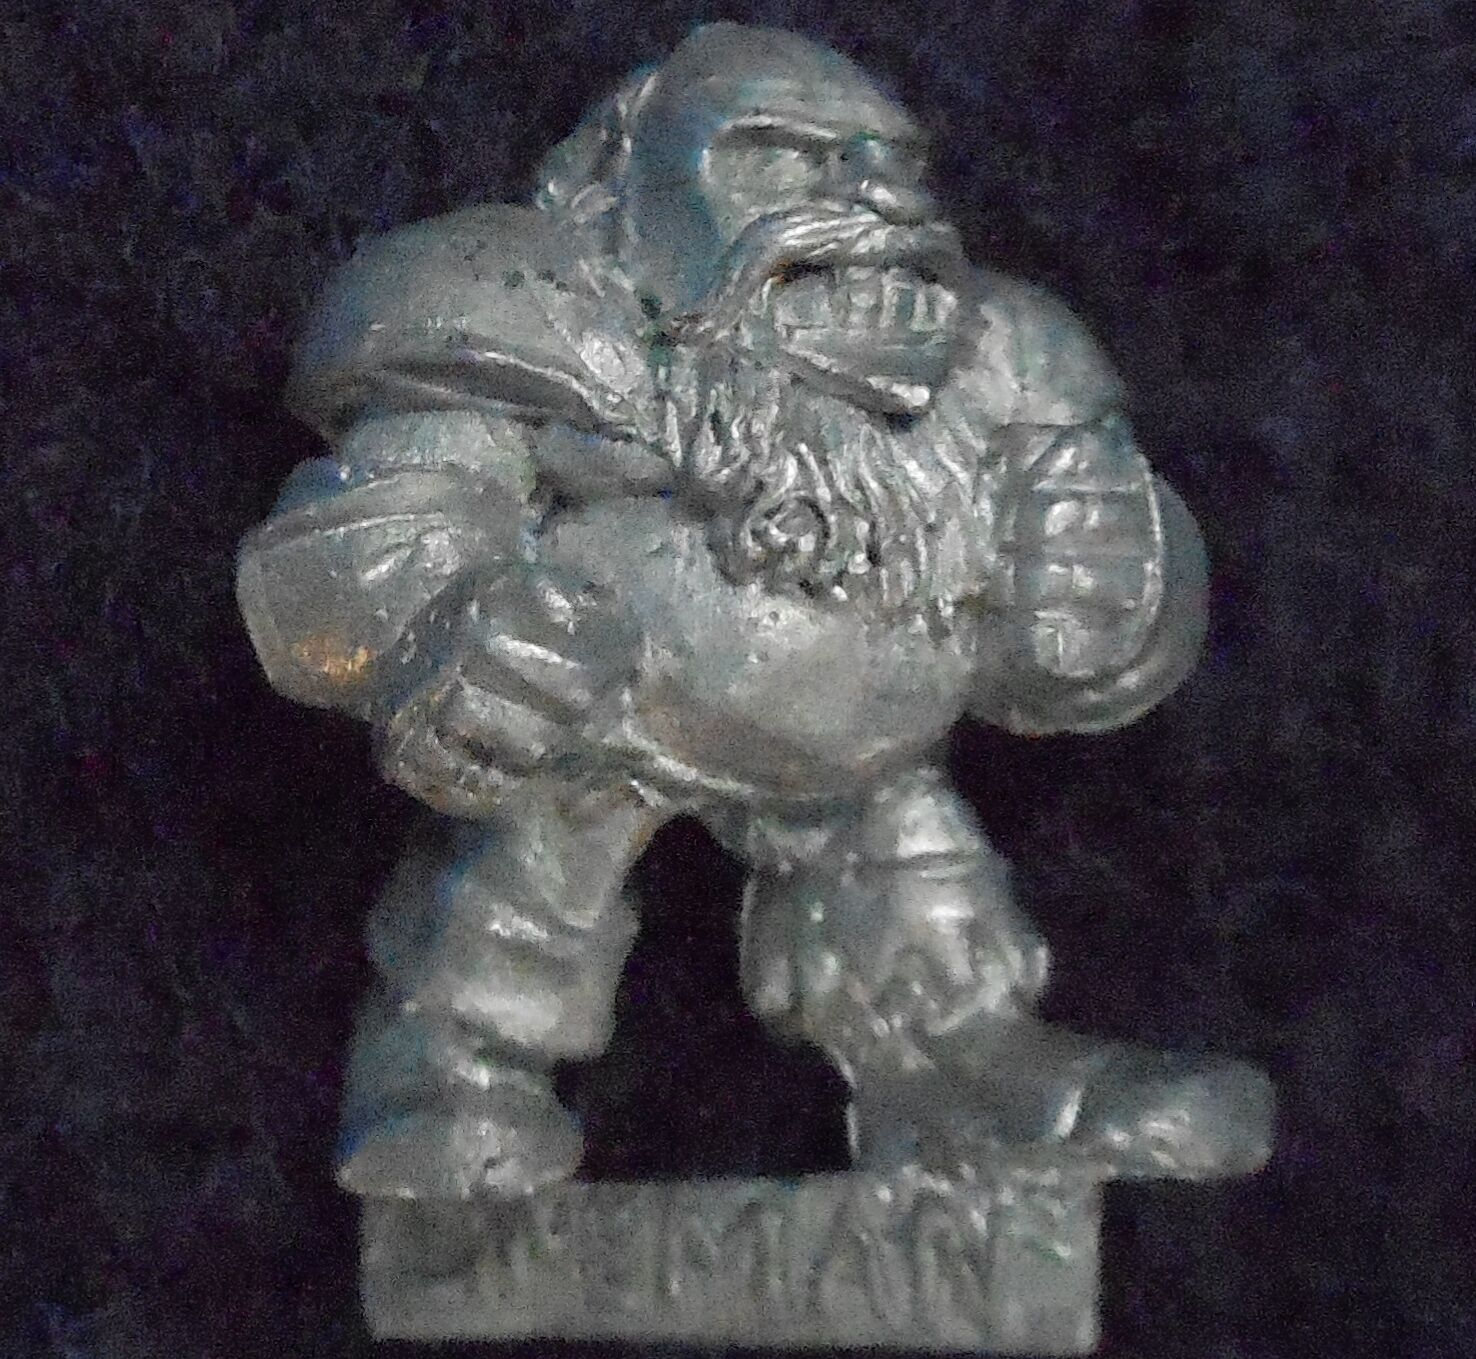 1989 Chaos Dwarf Bloodbowl 2nd Edition Lineman Citadel Fantasy Football Linesman